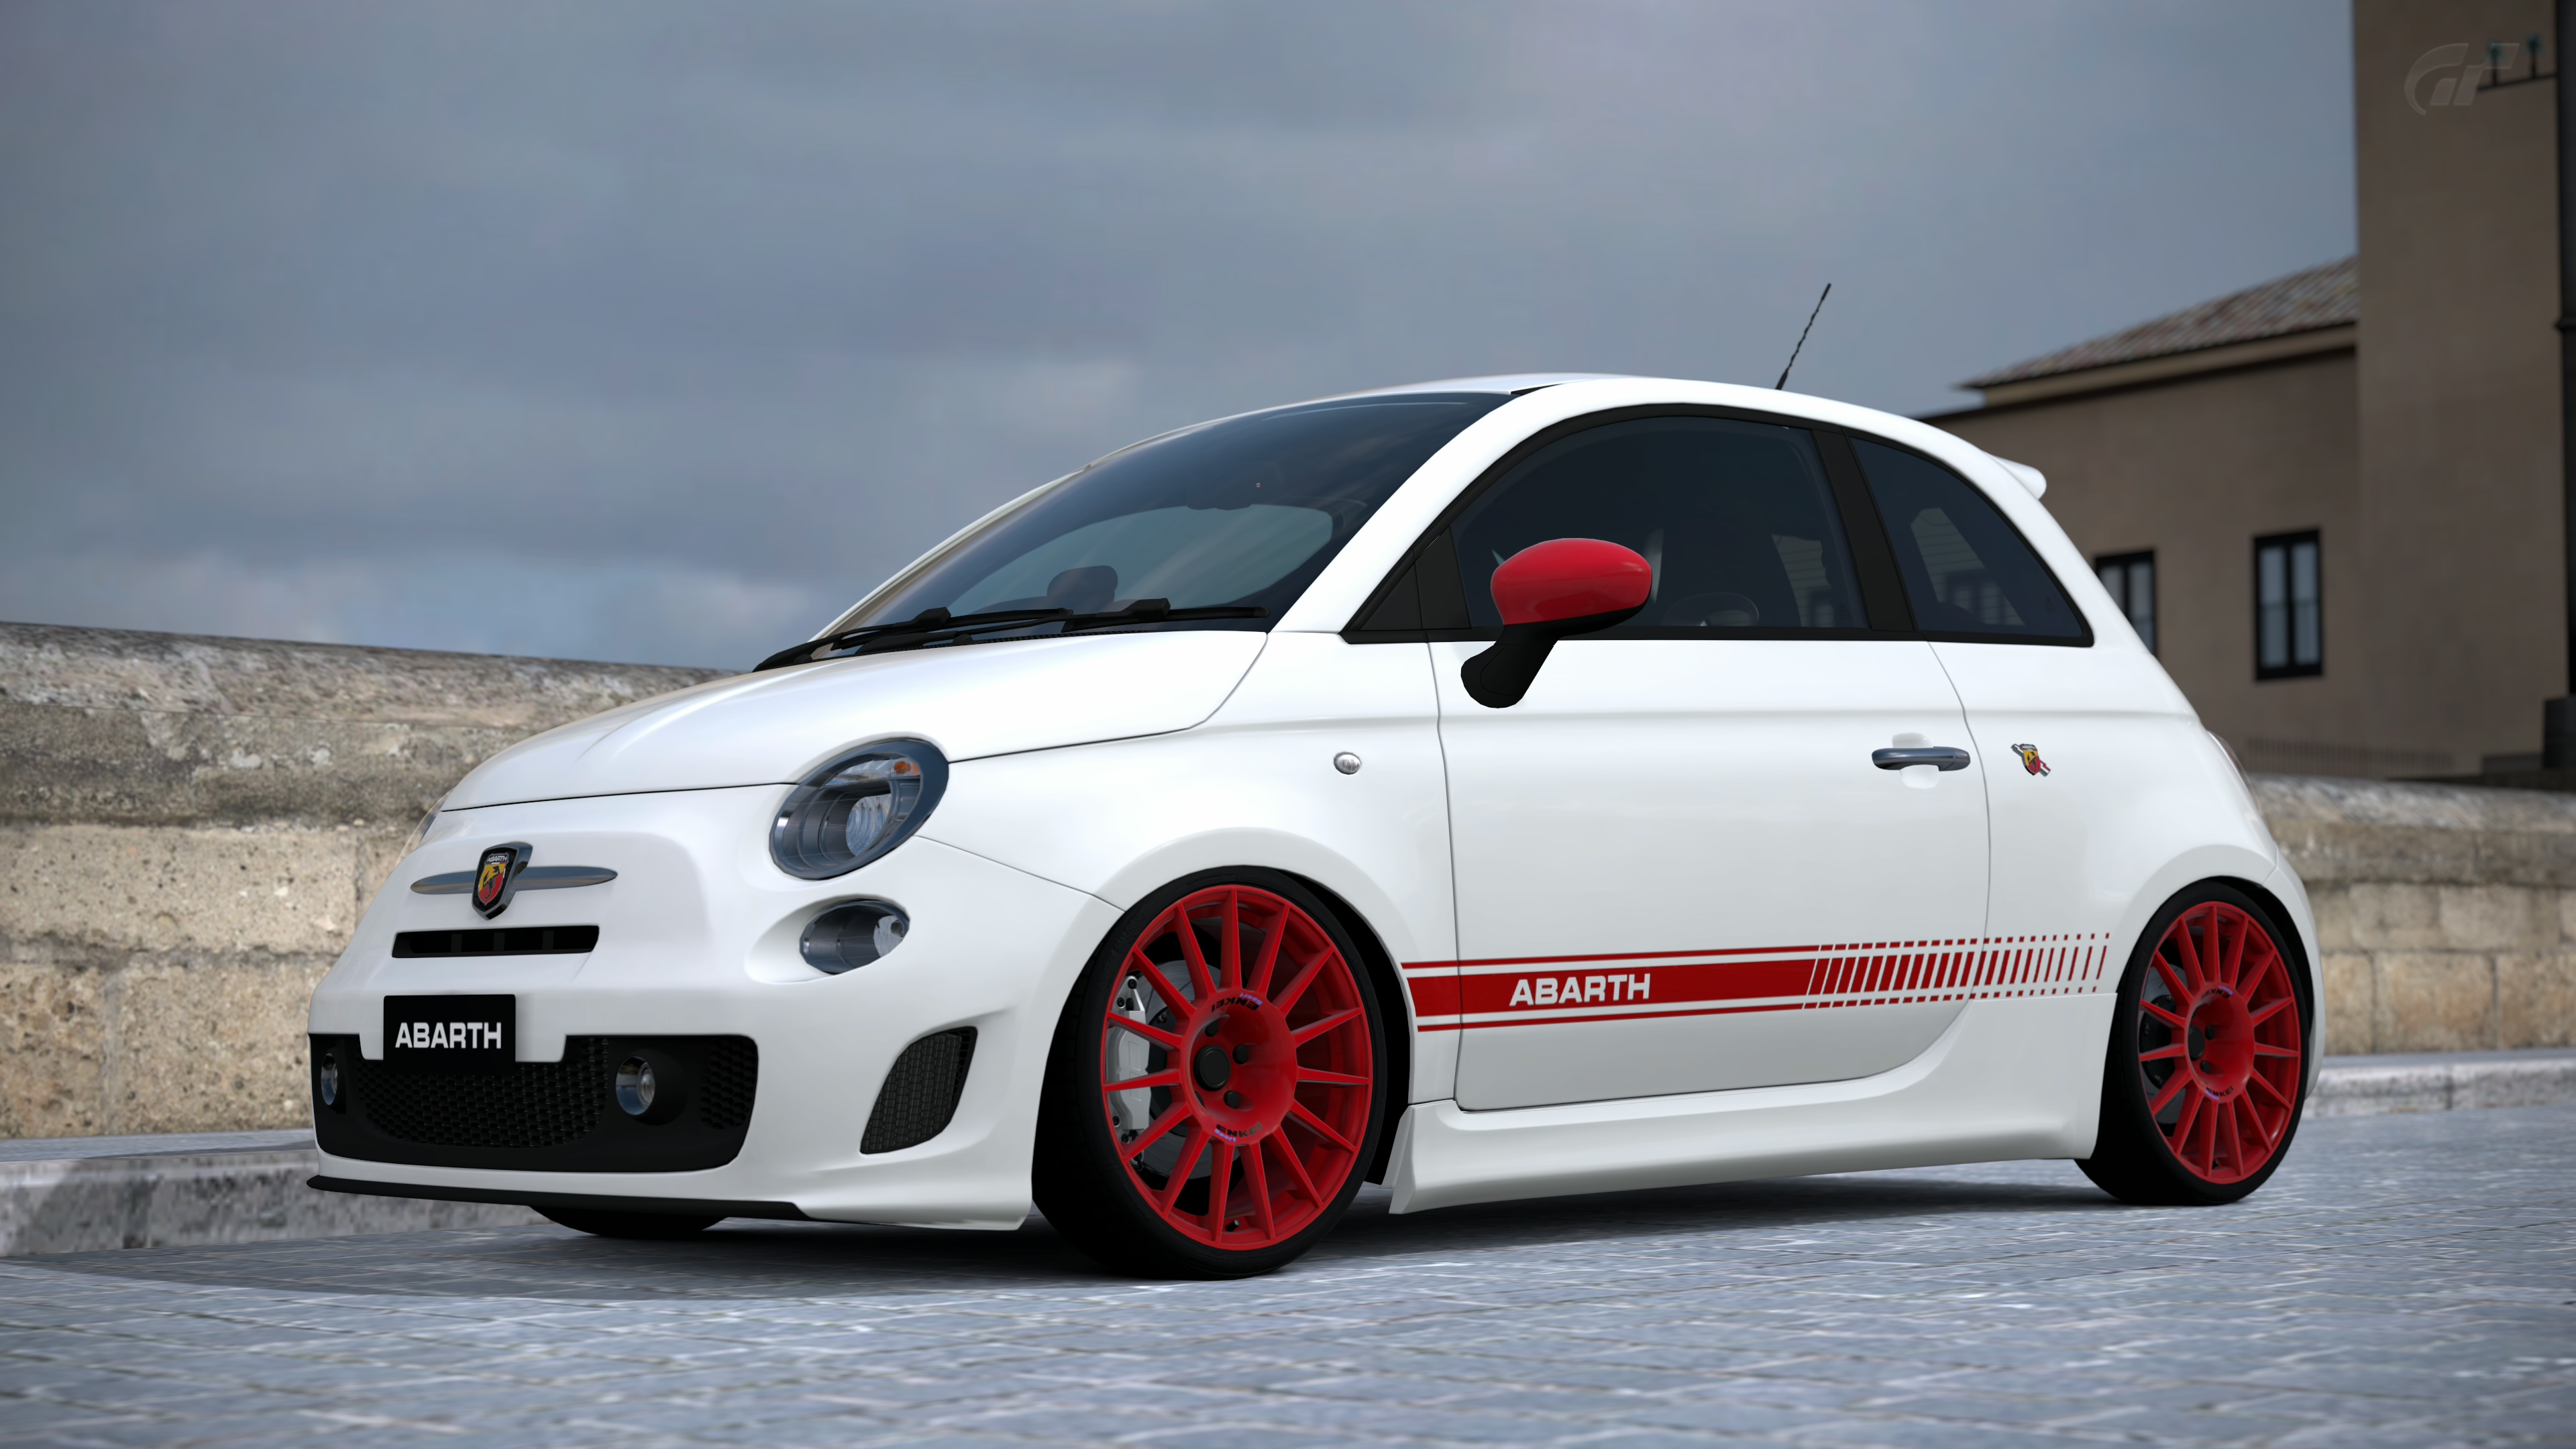 Fiat 500 Abarth Gran Turismo 6 By Vertualissimo On